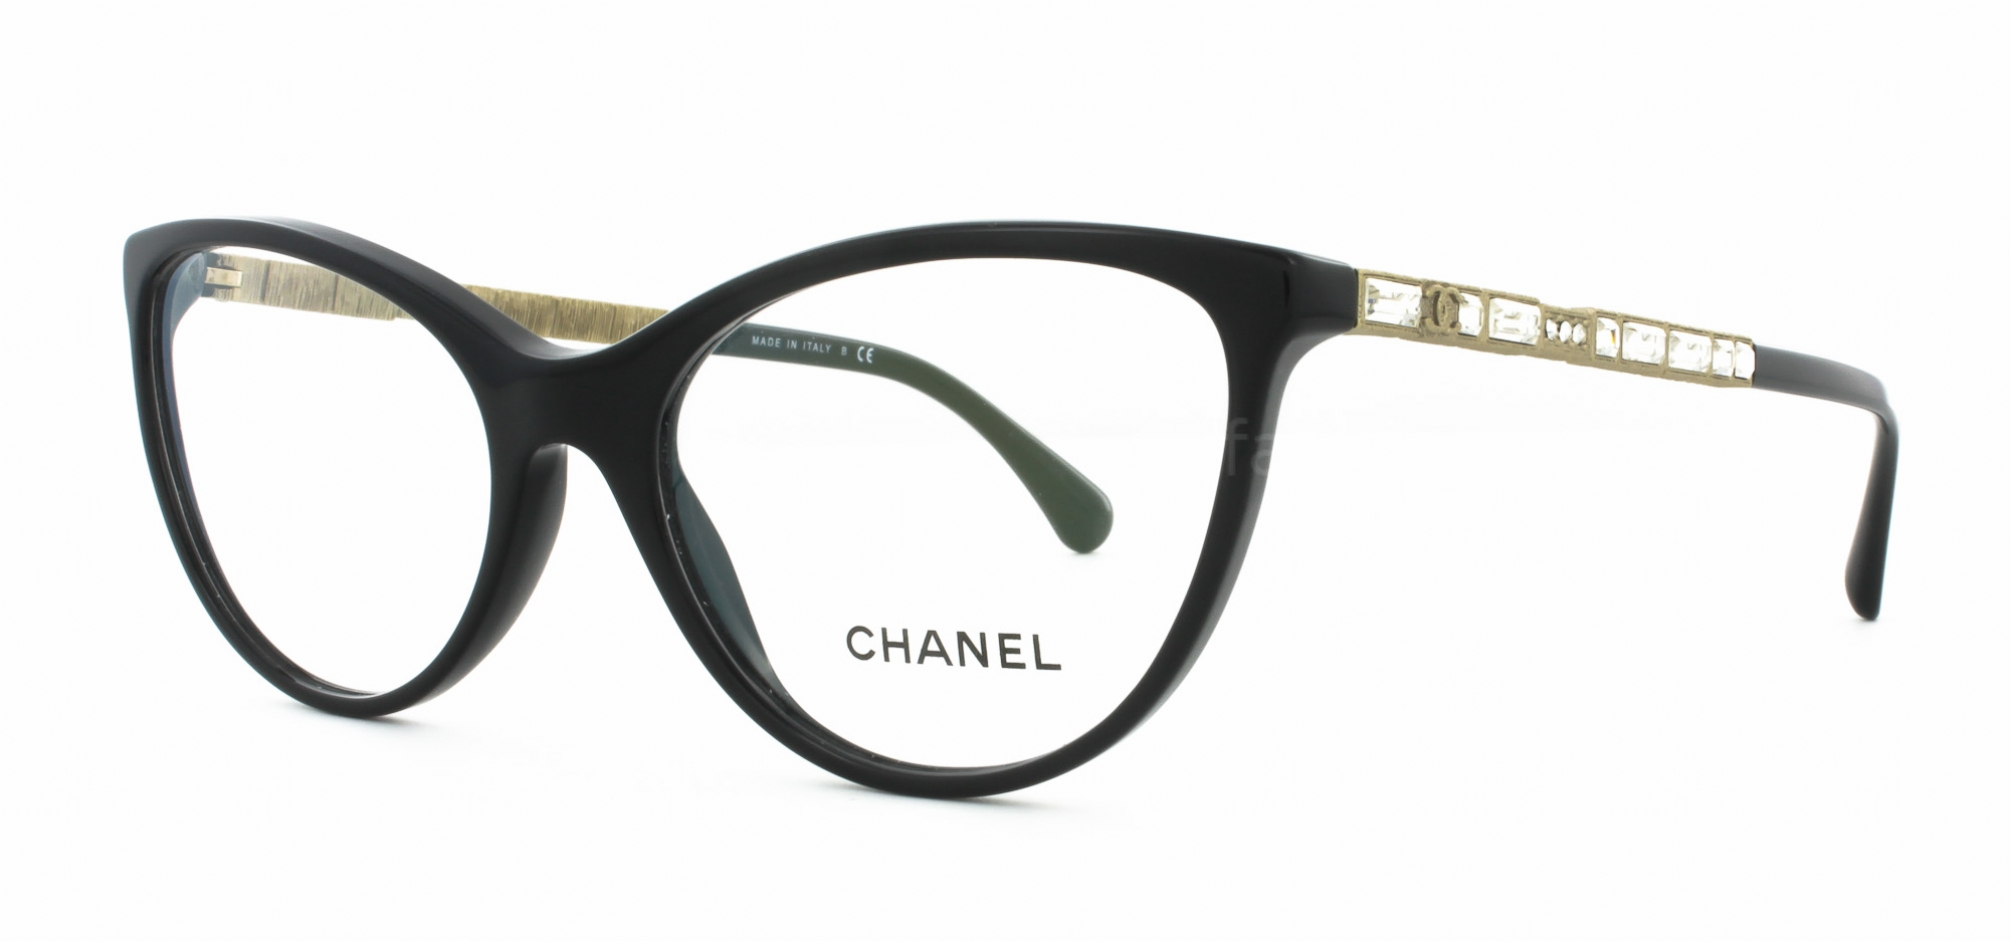 Chanel 3303b Eyeglasses